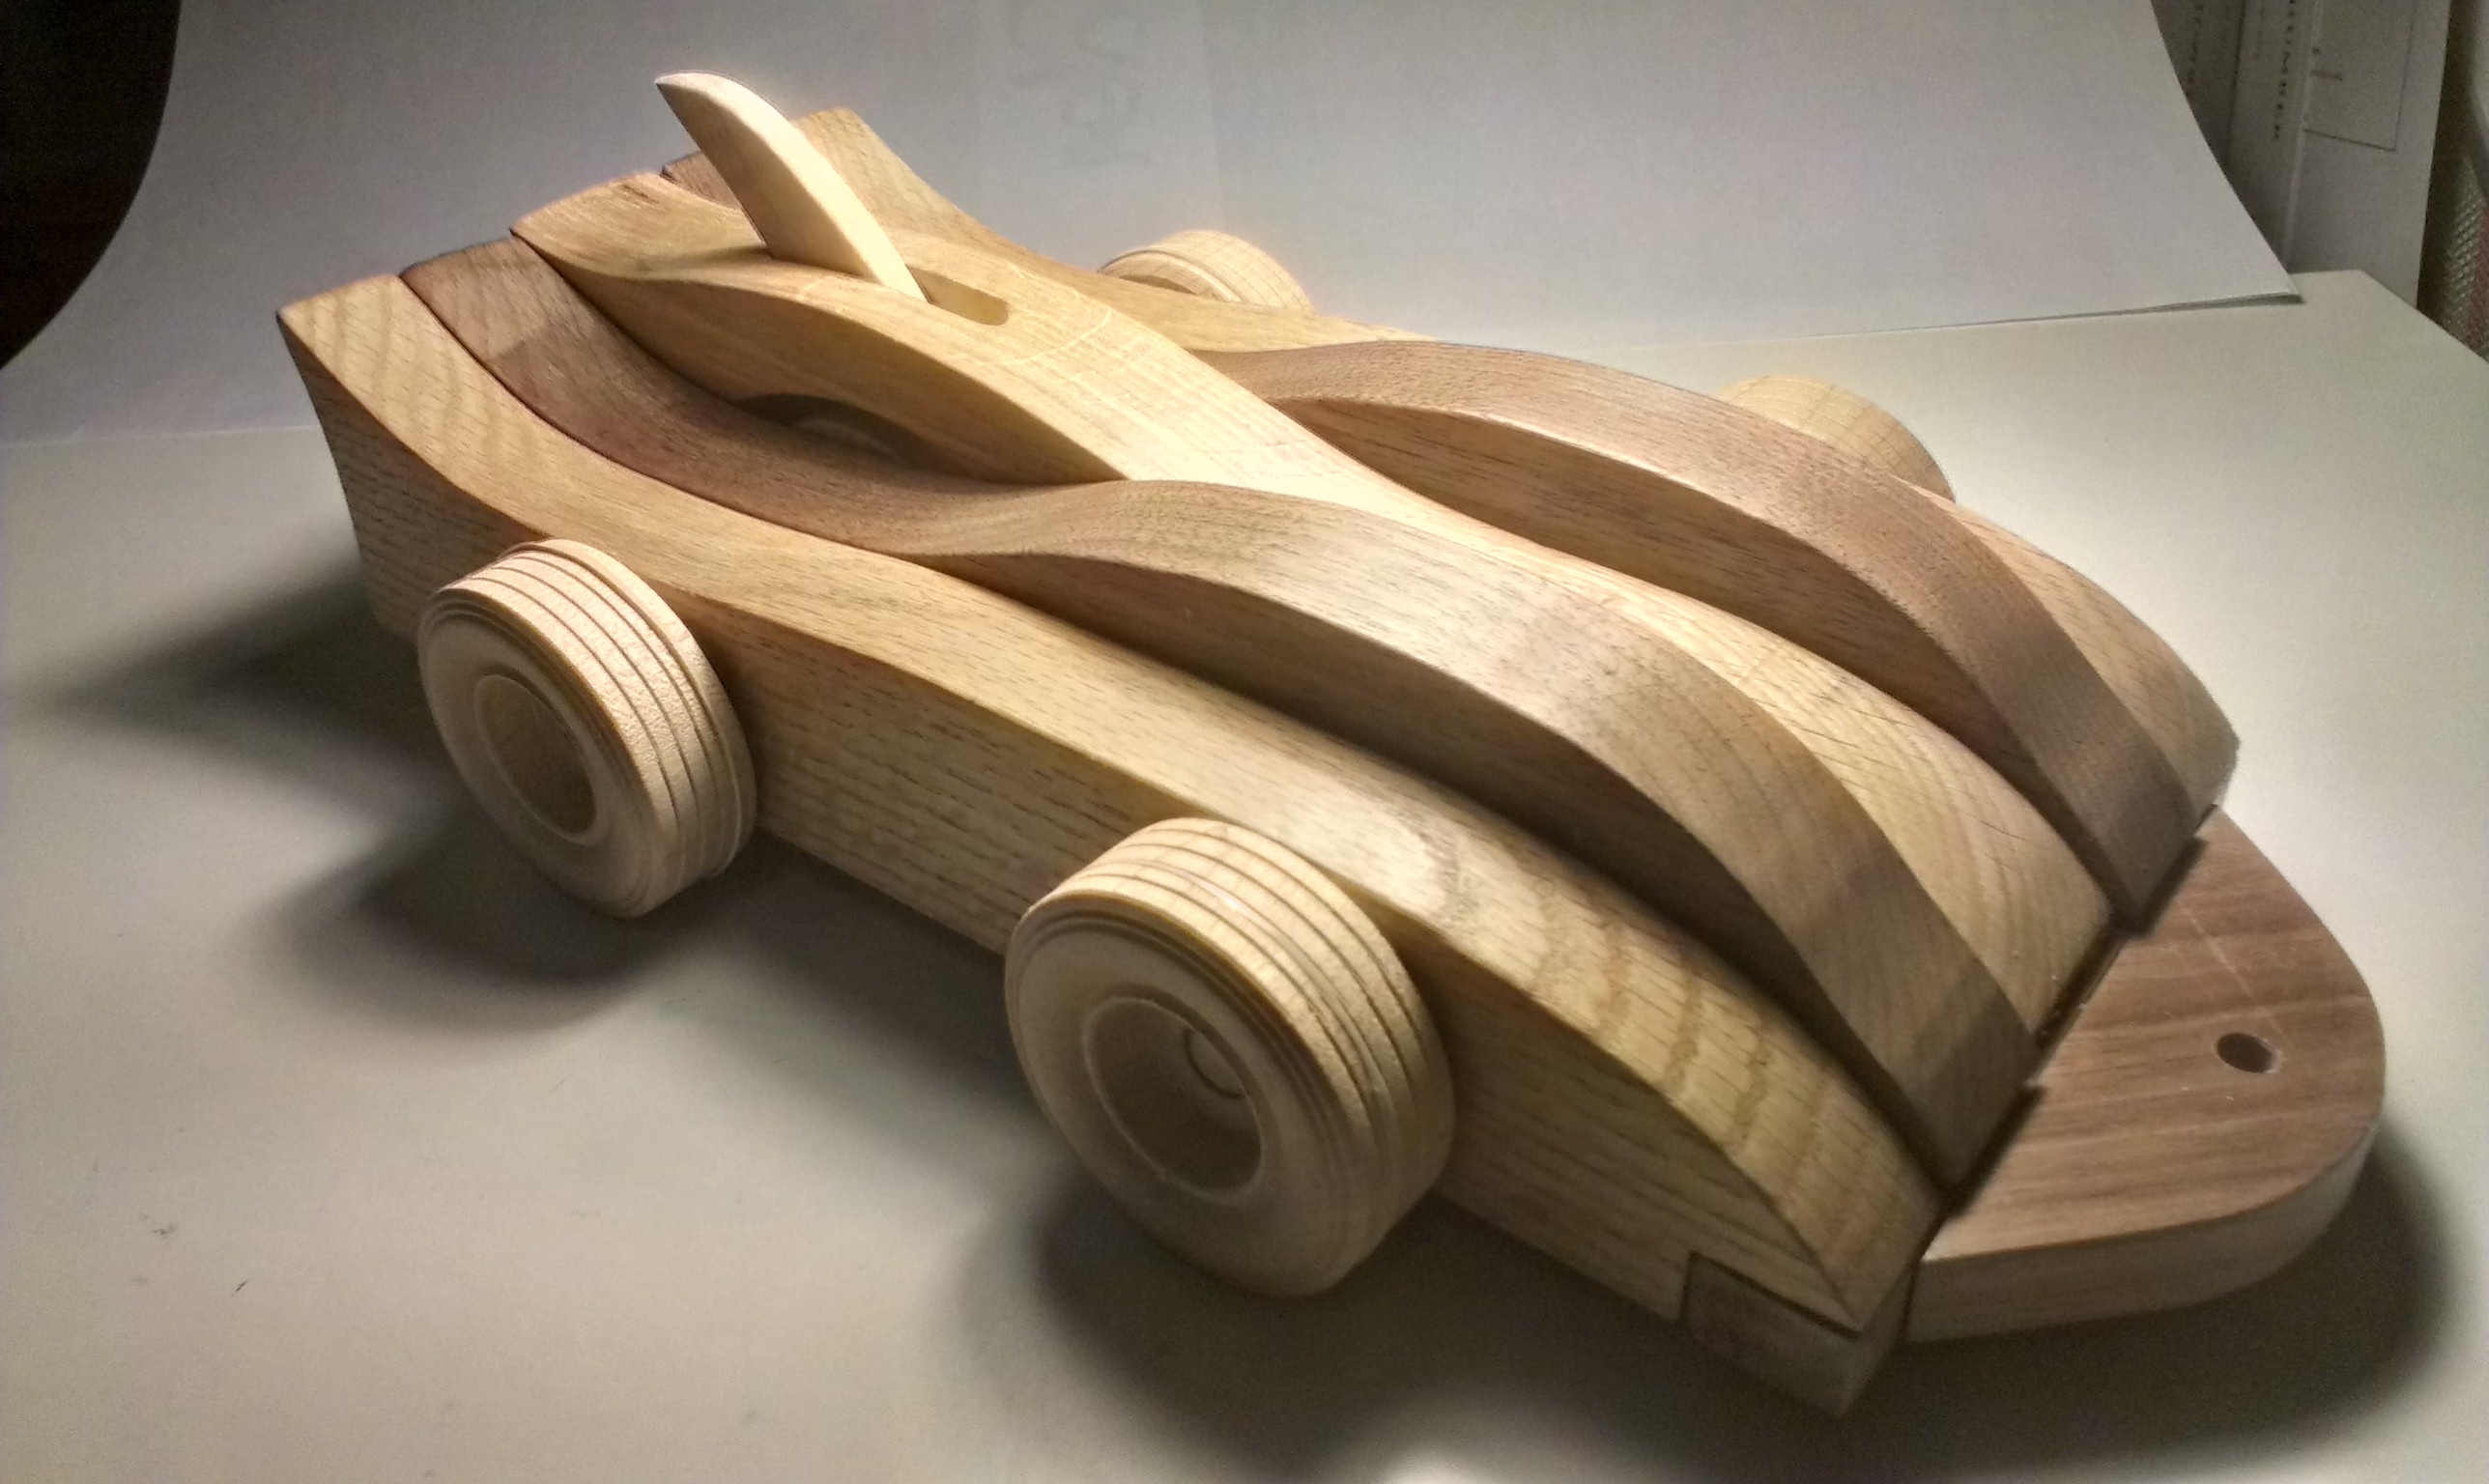 Mechanical Wood Toy Car